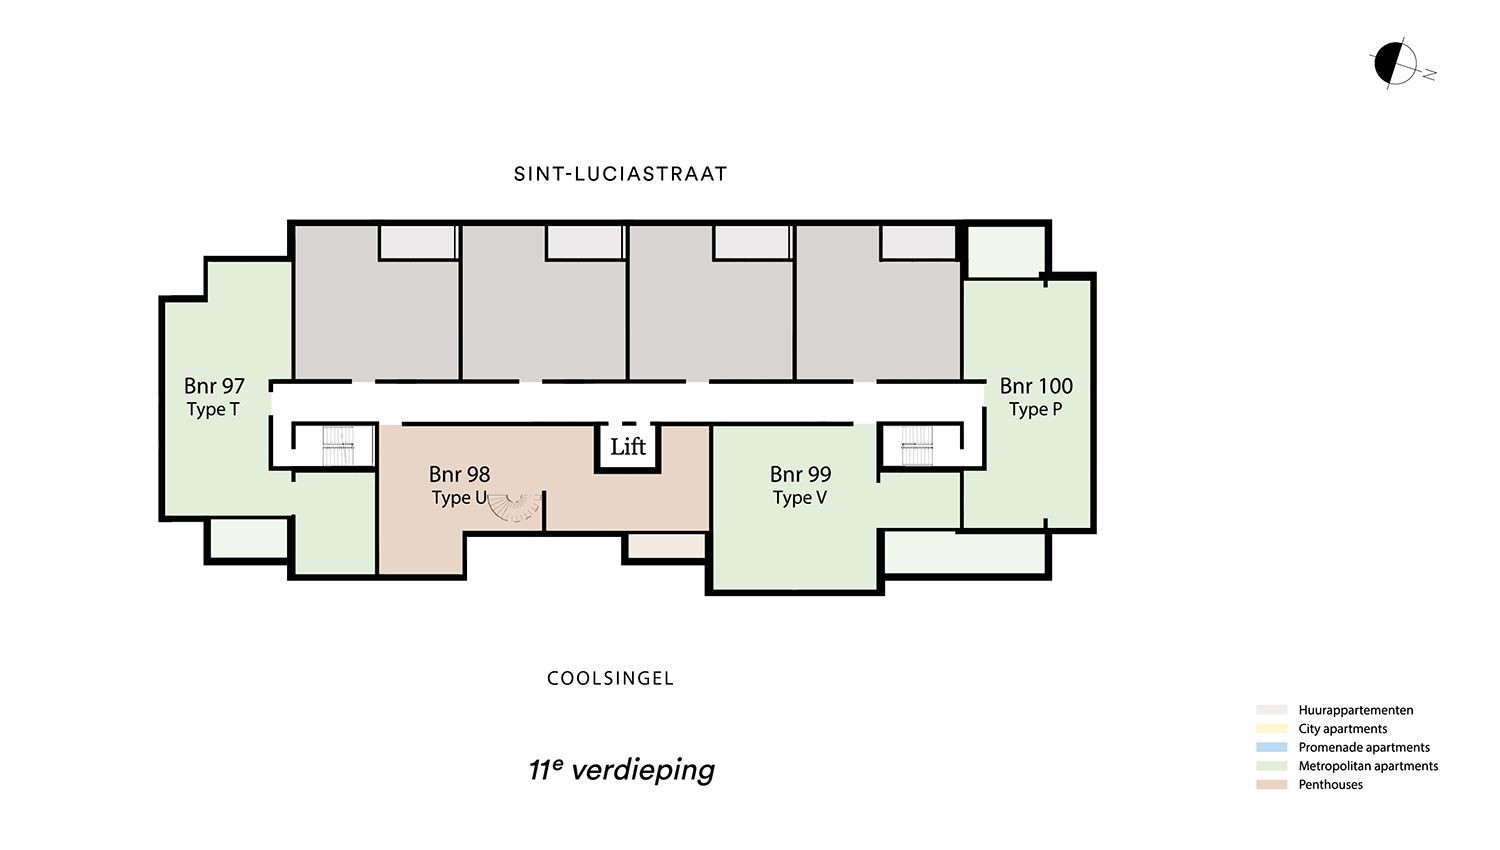 Floor plan verdieping 11 Type T - Metropolitan apartment N� 75 coolsingel